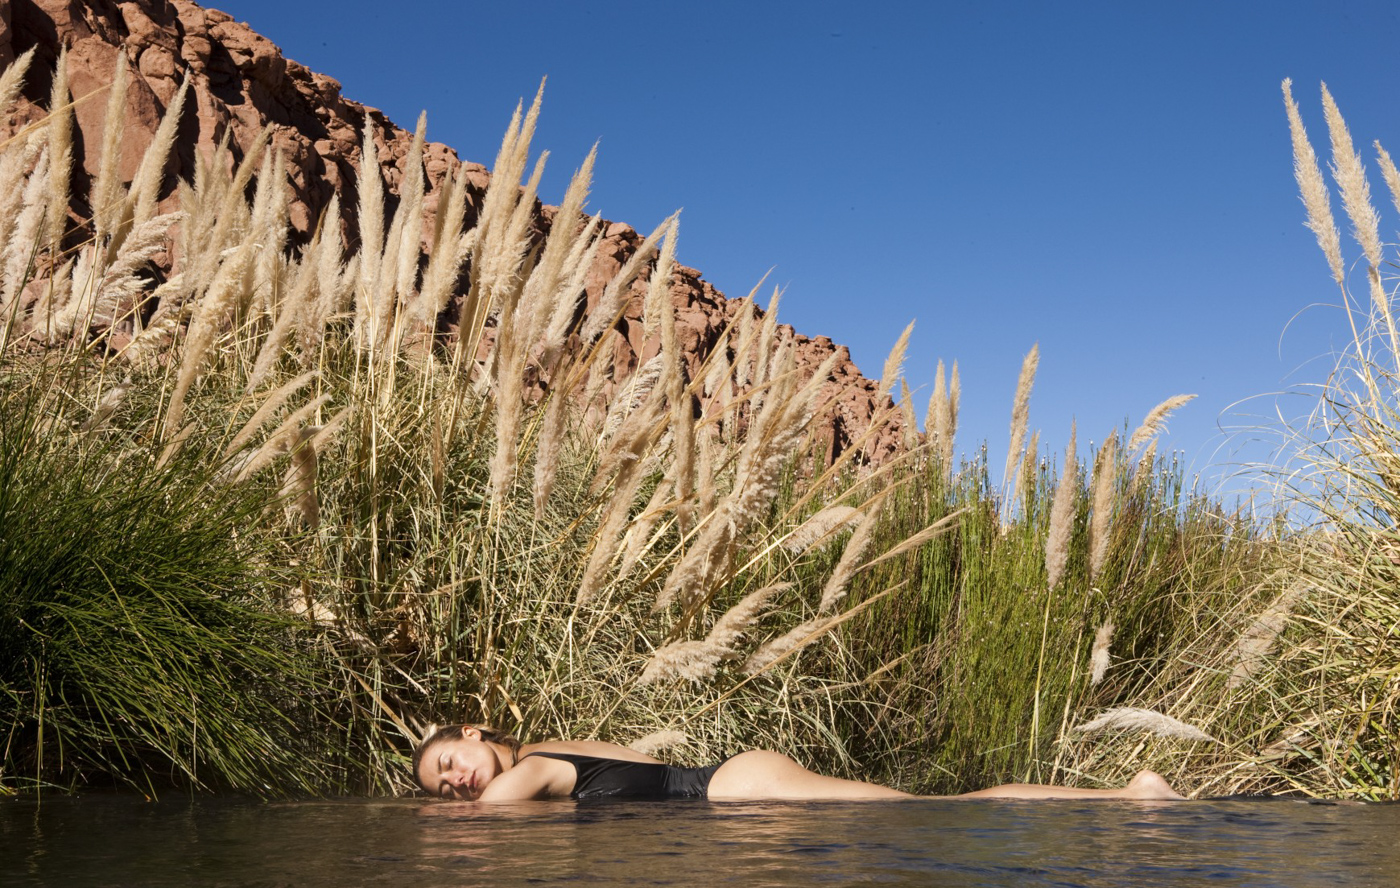 chi15-unwind-in-a-hot-spring-free-turismochile